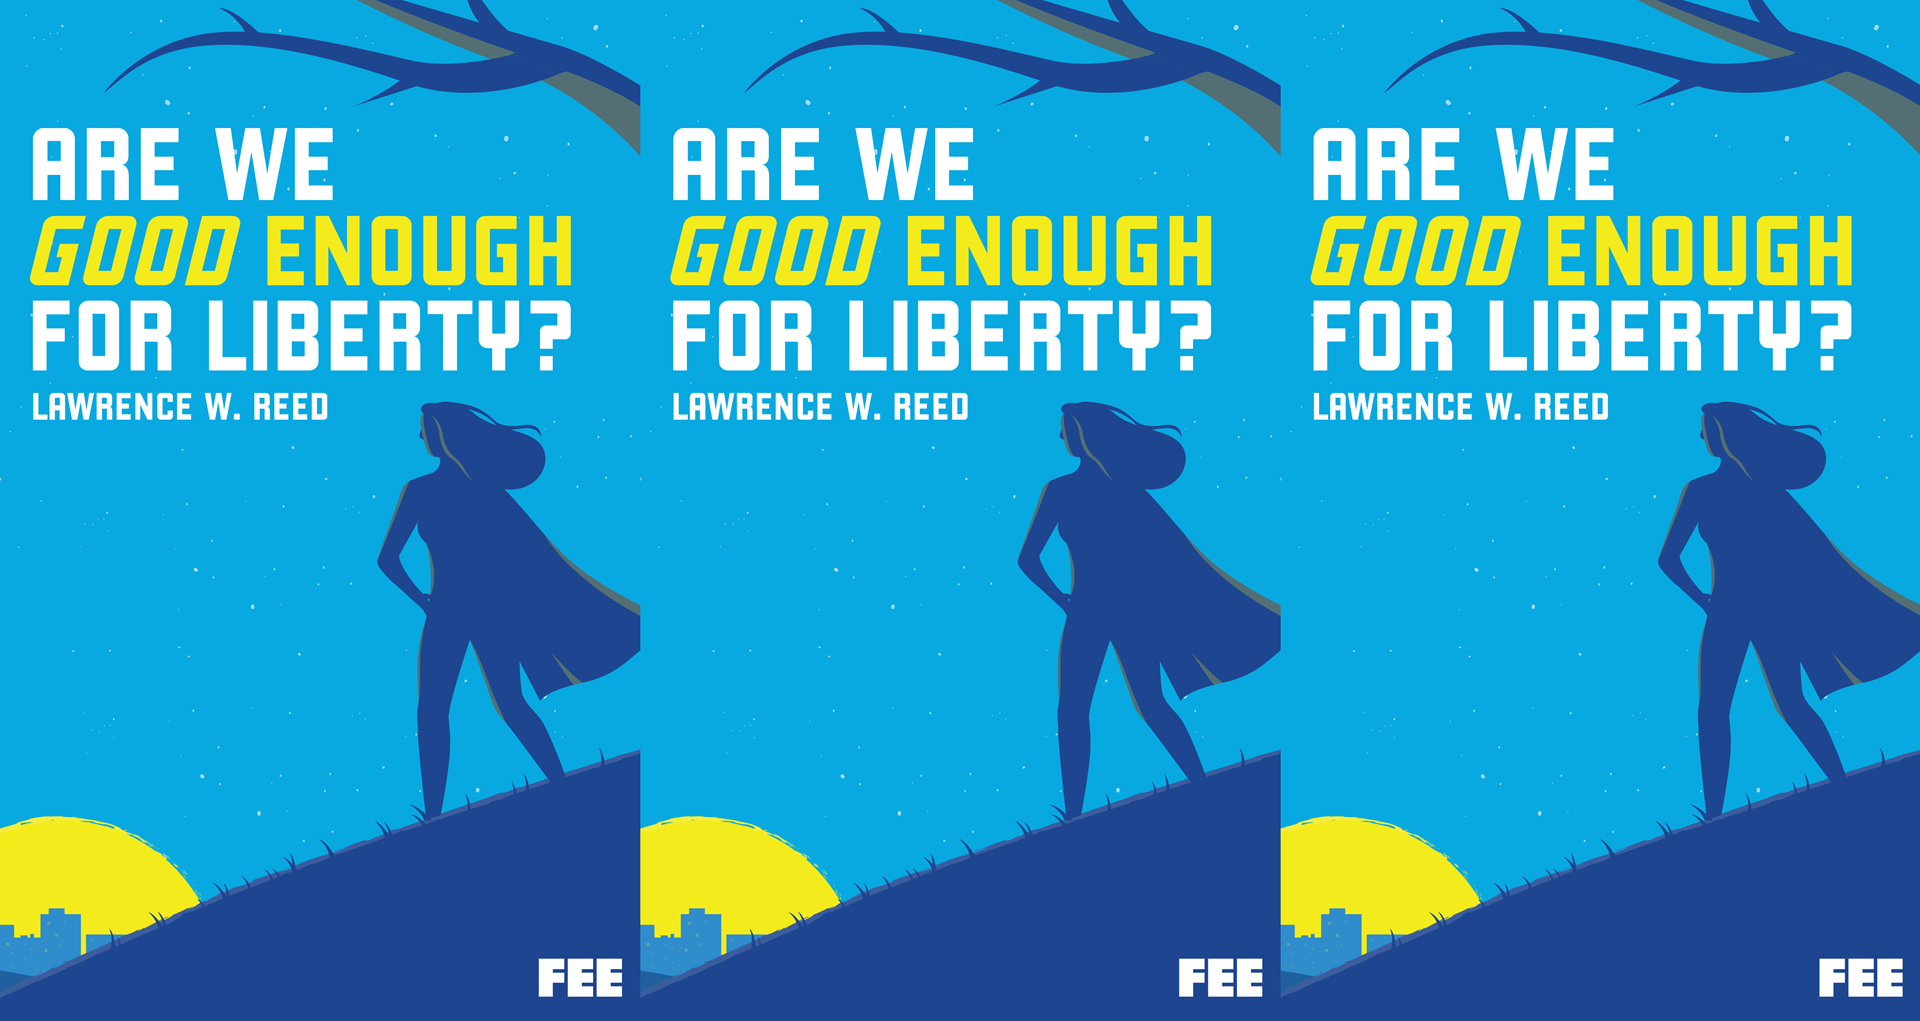 The Blessings Of Liberty Include Fully >> Are We Good Enough For Liberty Foundation For Economic Education